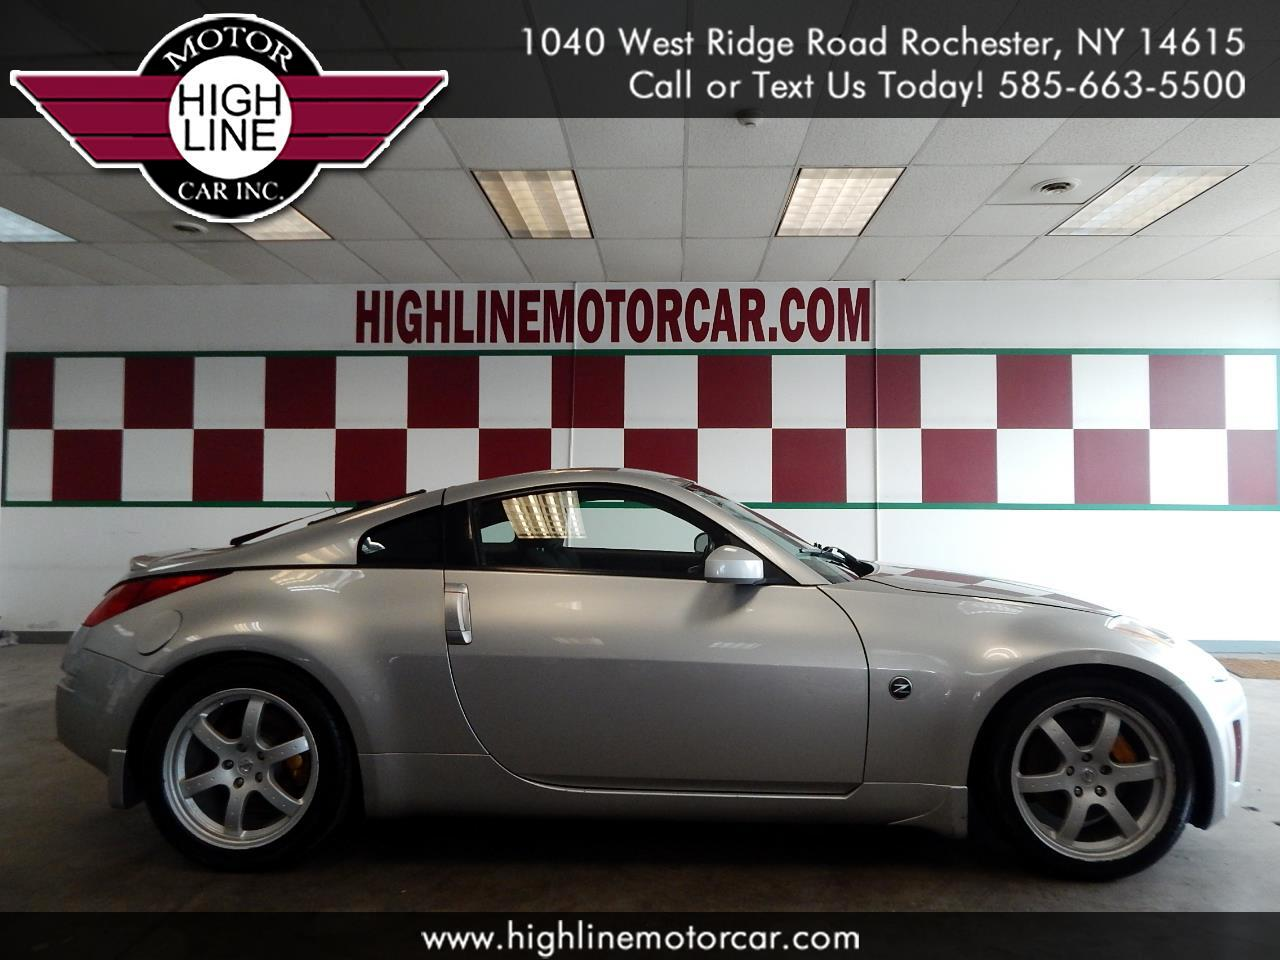 2003 Nissan 350Z 2dr Cpe Track Manual Trans